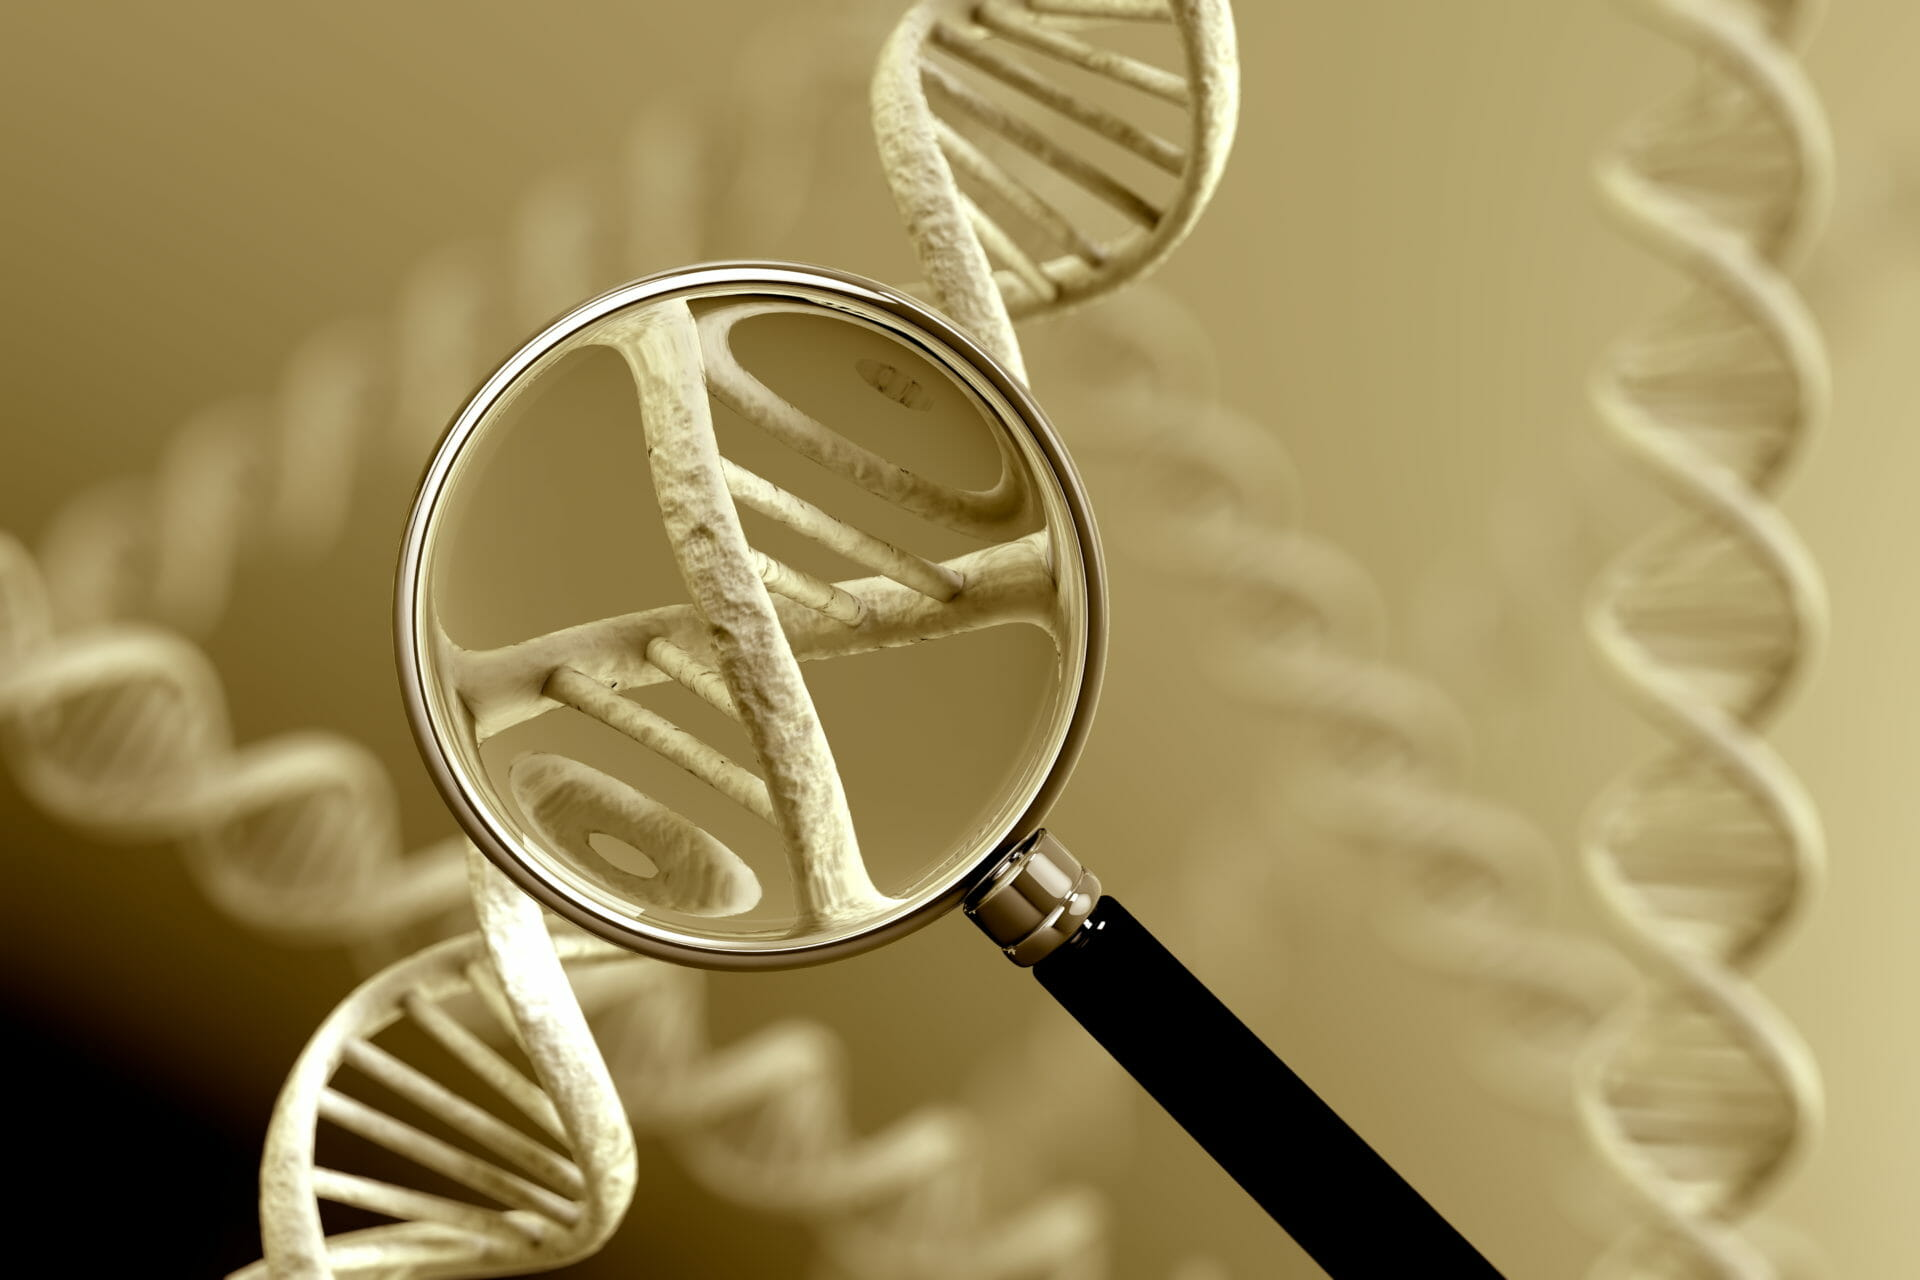 A magnifying glass focussing on a section of a DNA strand